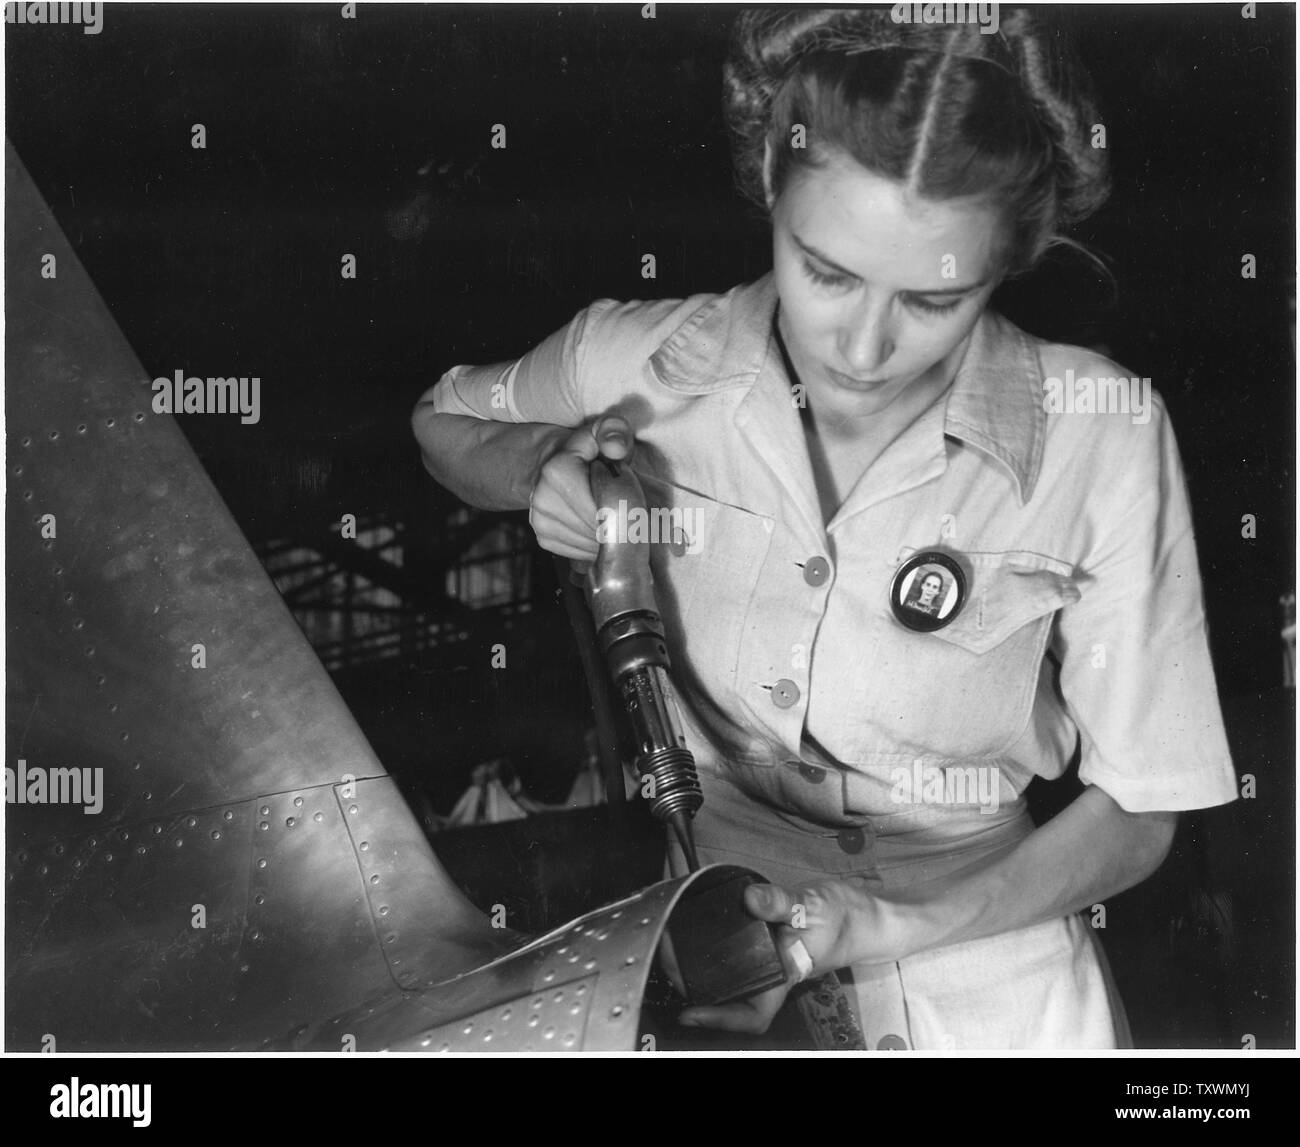 Answering the nation's need for womanpower, Mrs. Virginia Davis made arrangements for the care of her two children during the day and joined her husband at work in the Naval Air Base in Corpus Christi, Texas. - Stock Image